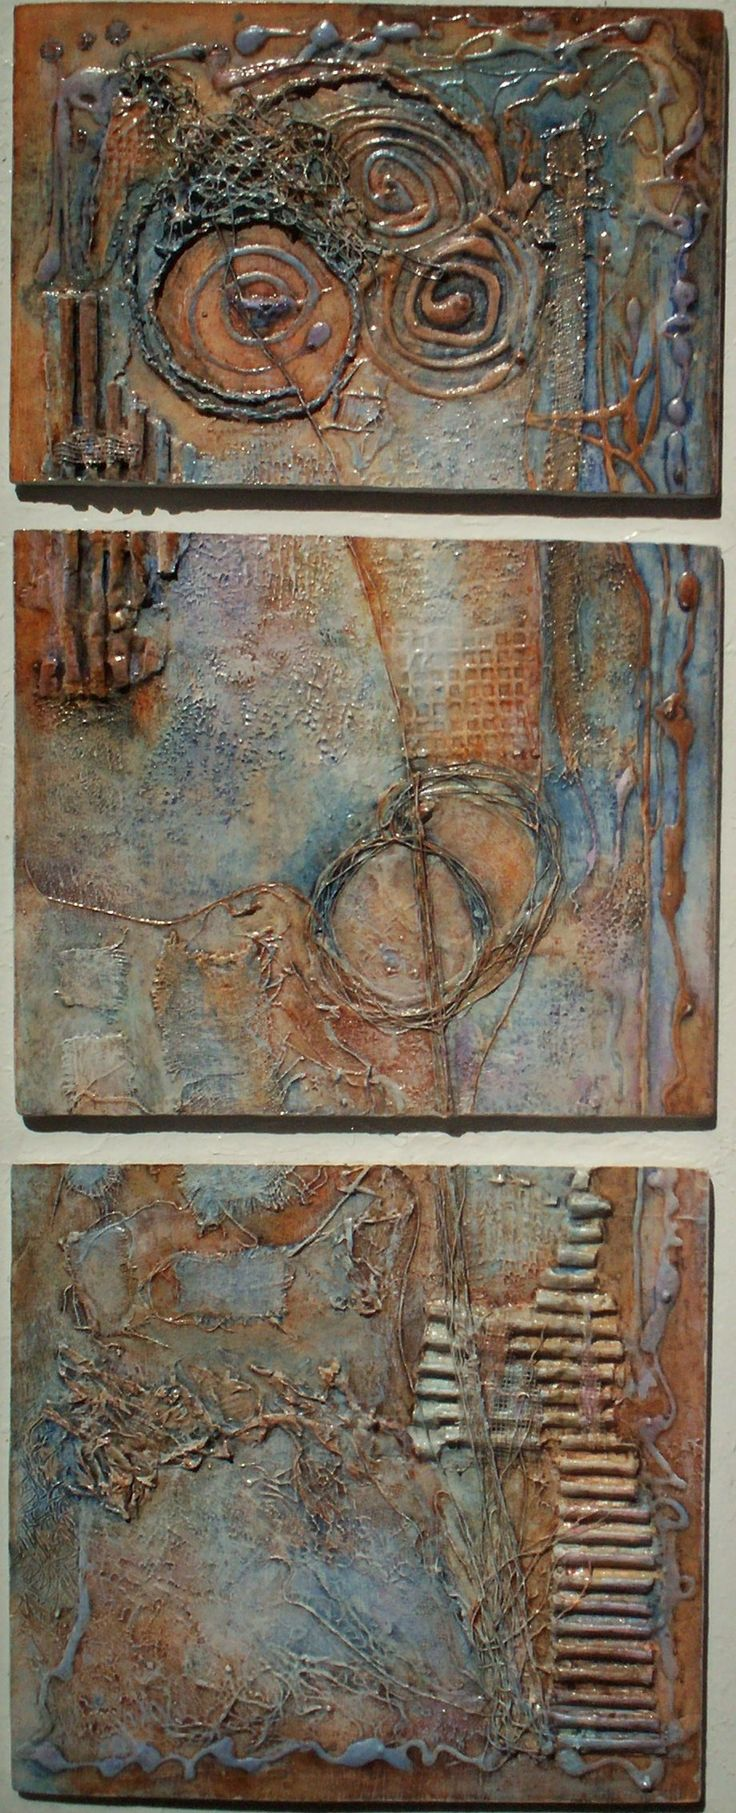 Textures1 triptych - acrylic glazes on highly textured gesso